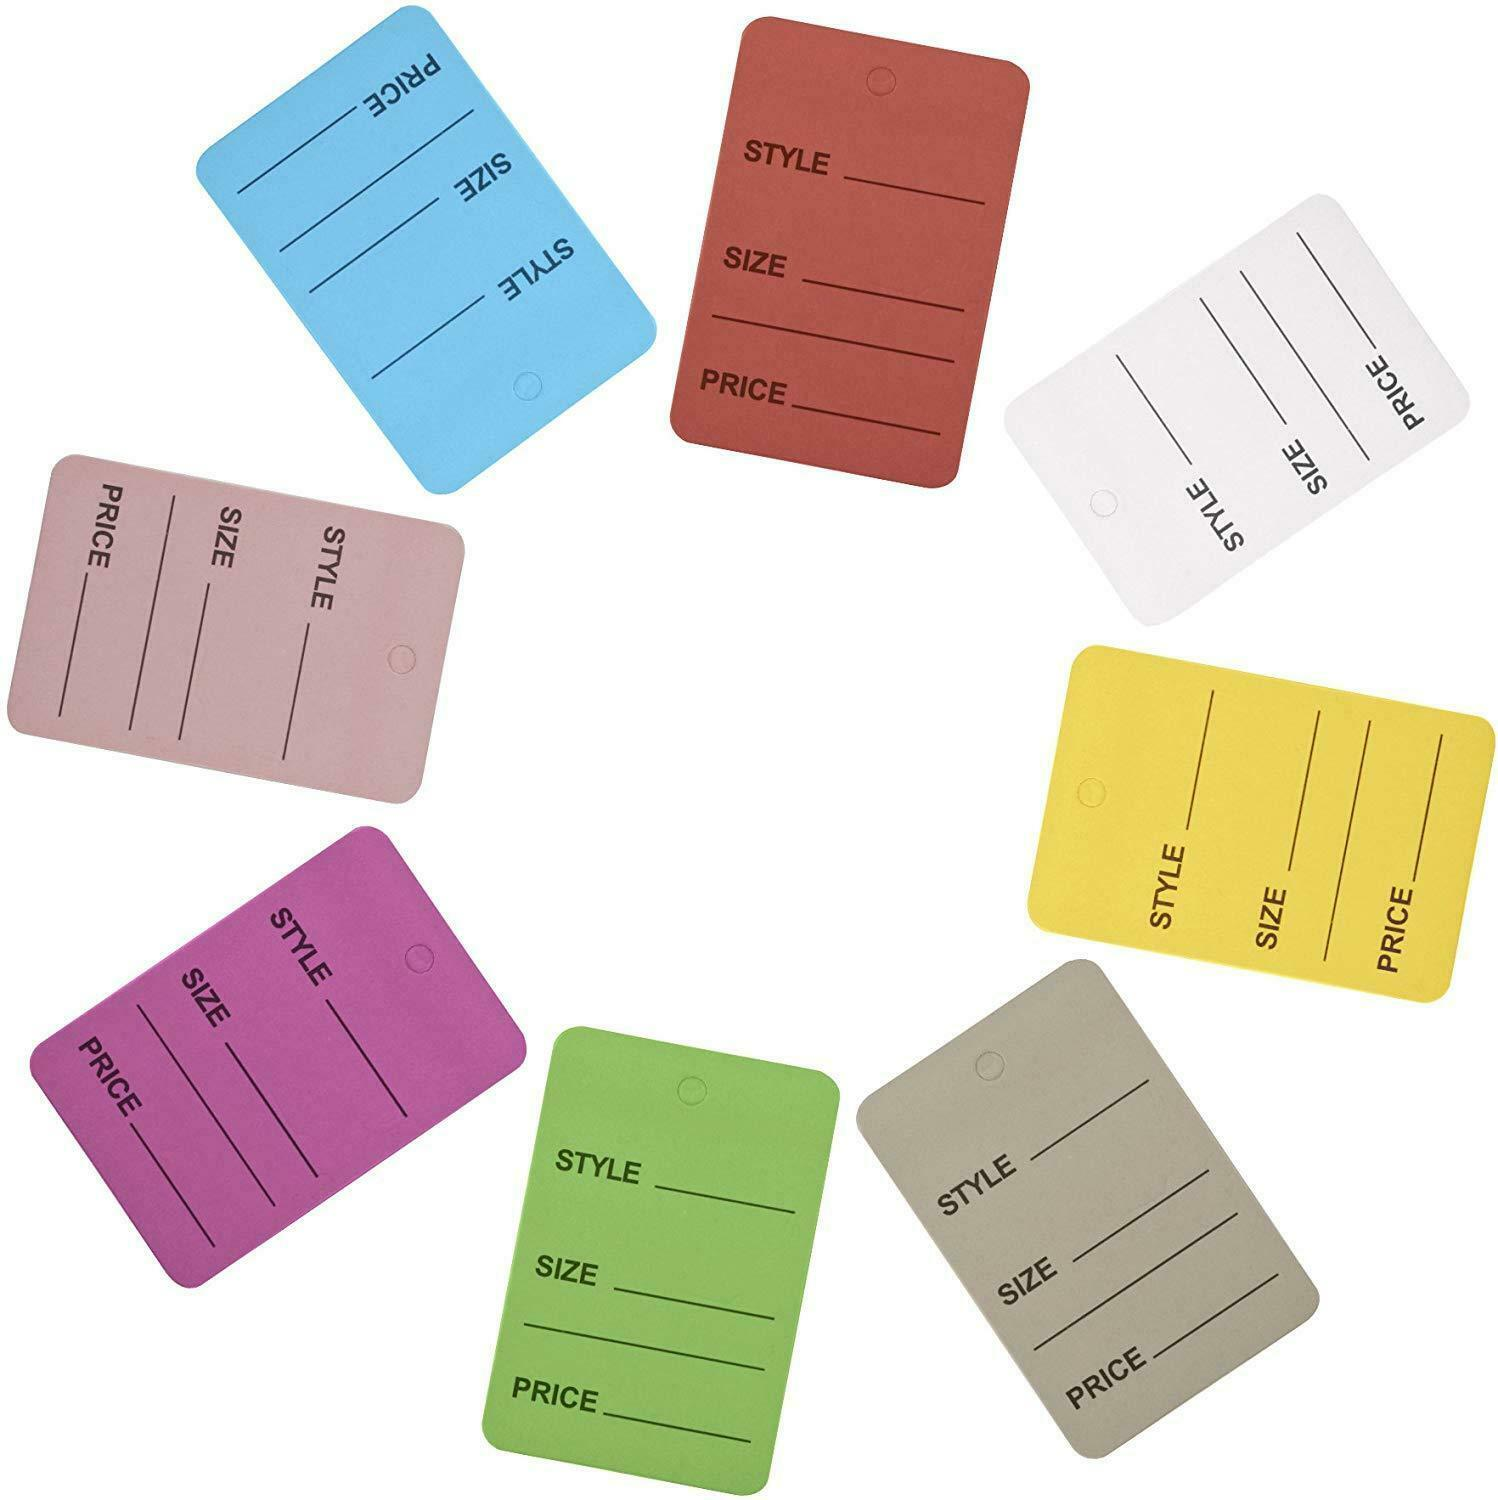 pack of 1000 Clothing jewelry Price Tags Mix 8 Colors Tags Pack Paper Perforated